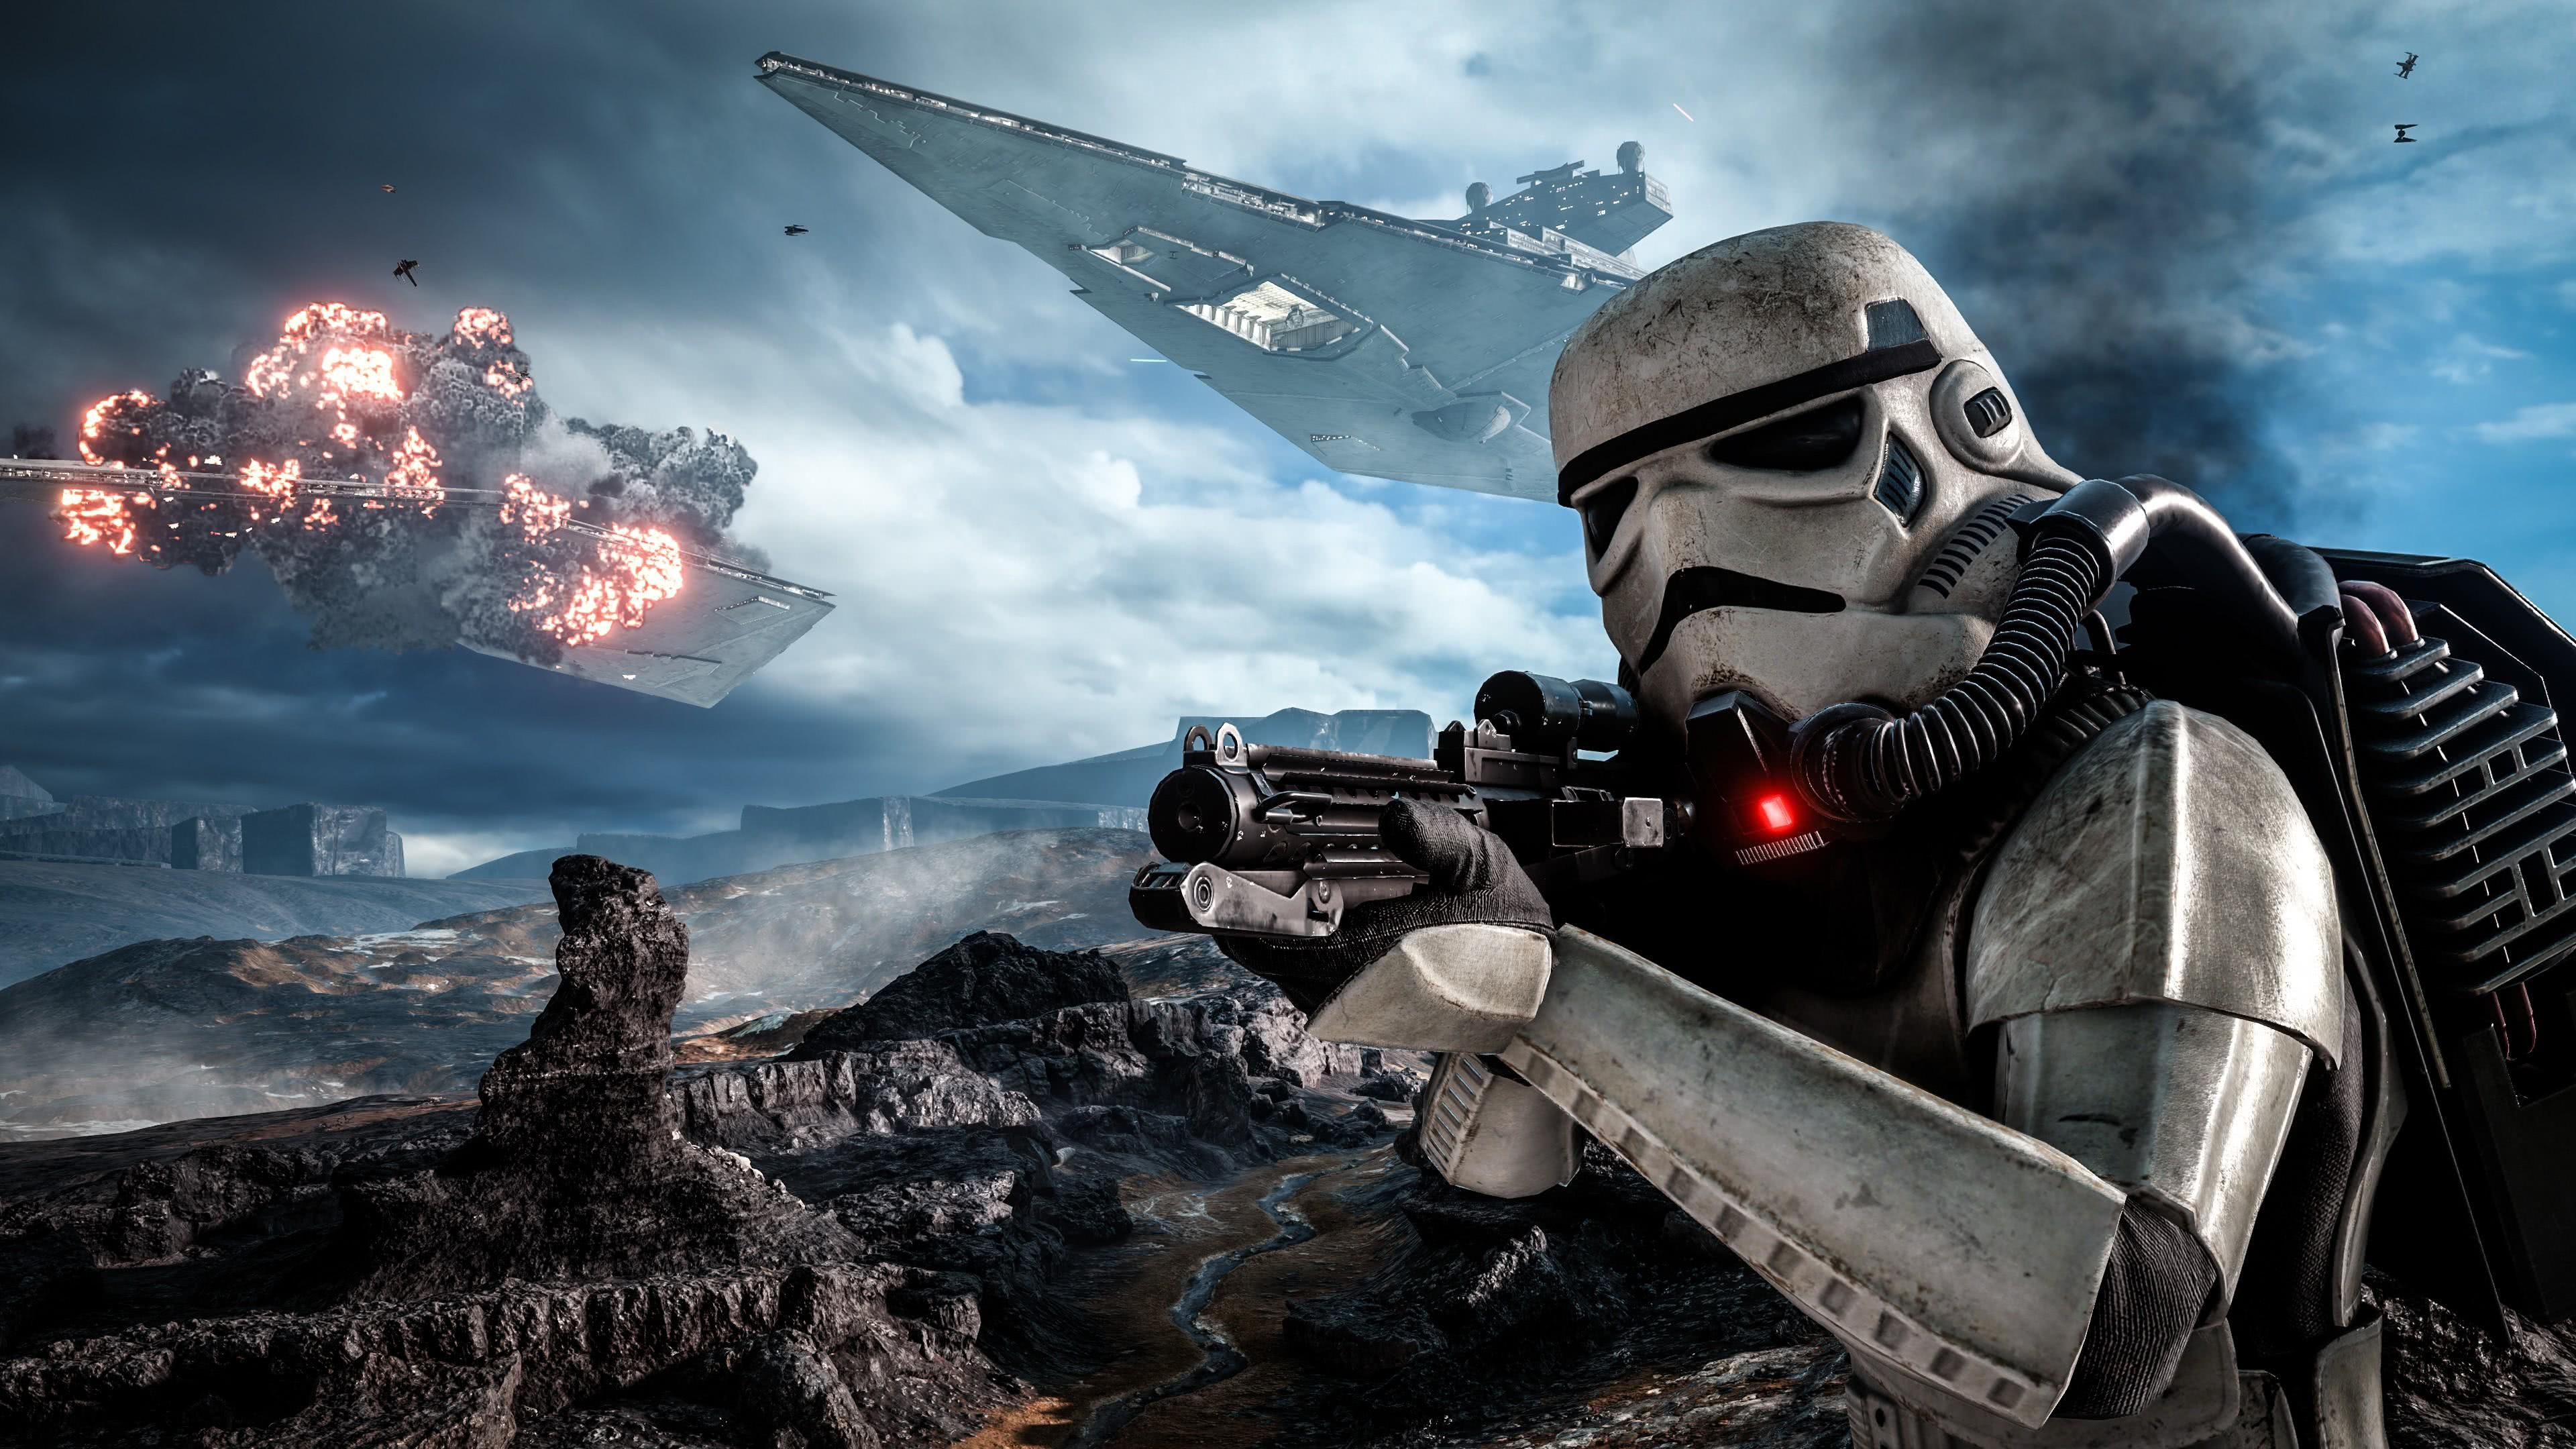 Star Wars Battlefront 2 Uhd 4k Wallpaper Http Www Wallpaperback Net Games Star Wars Battlefront 2 Uhd Star Wars Wallpaper Star Wars Rpg Star Wars Video Games